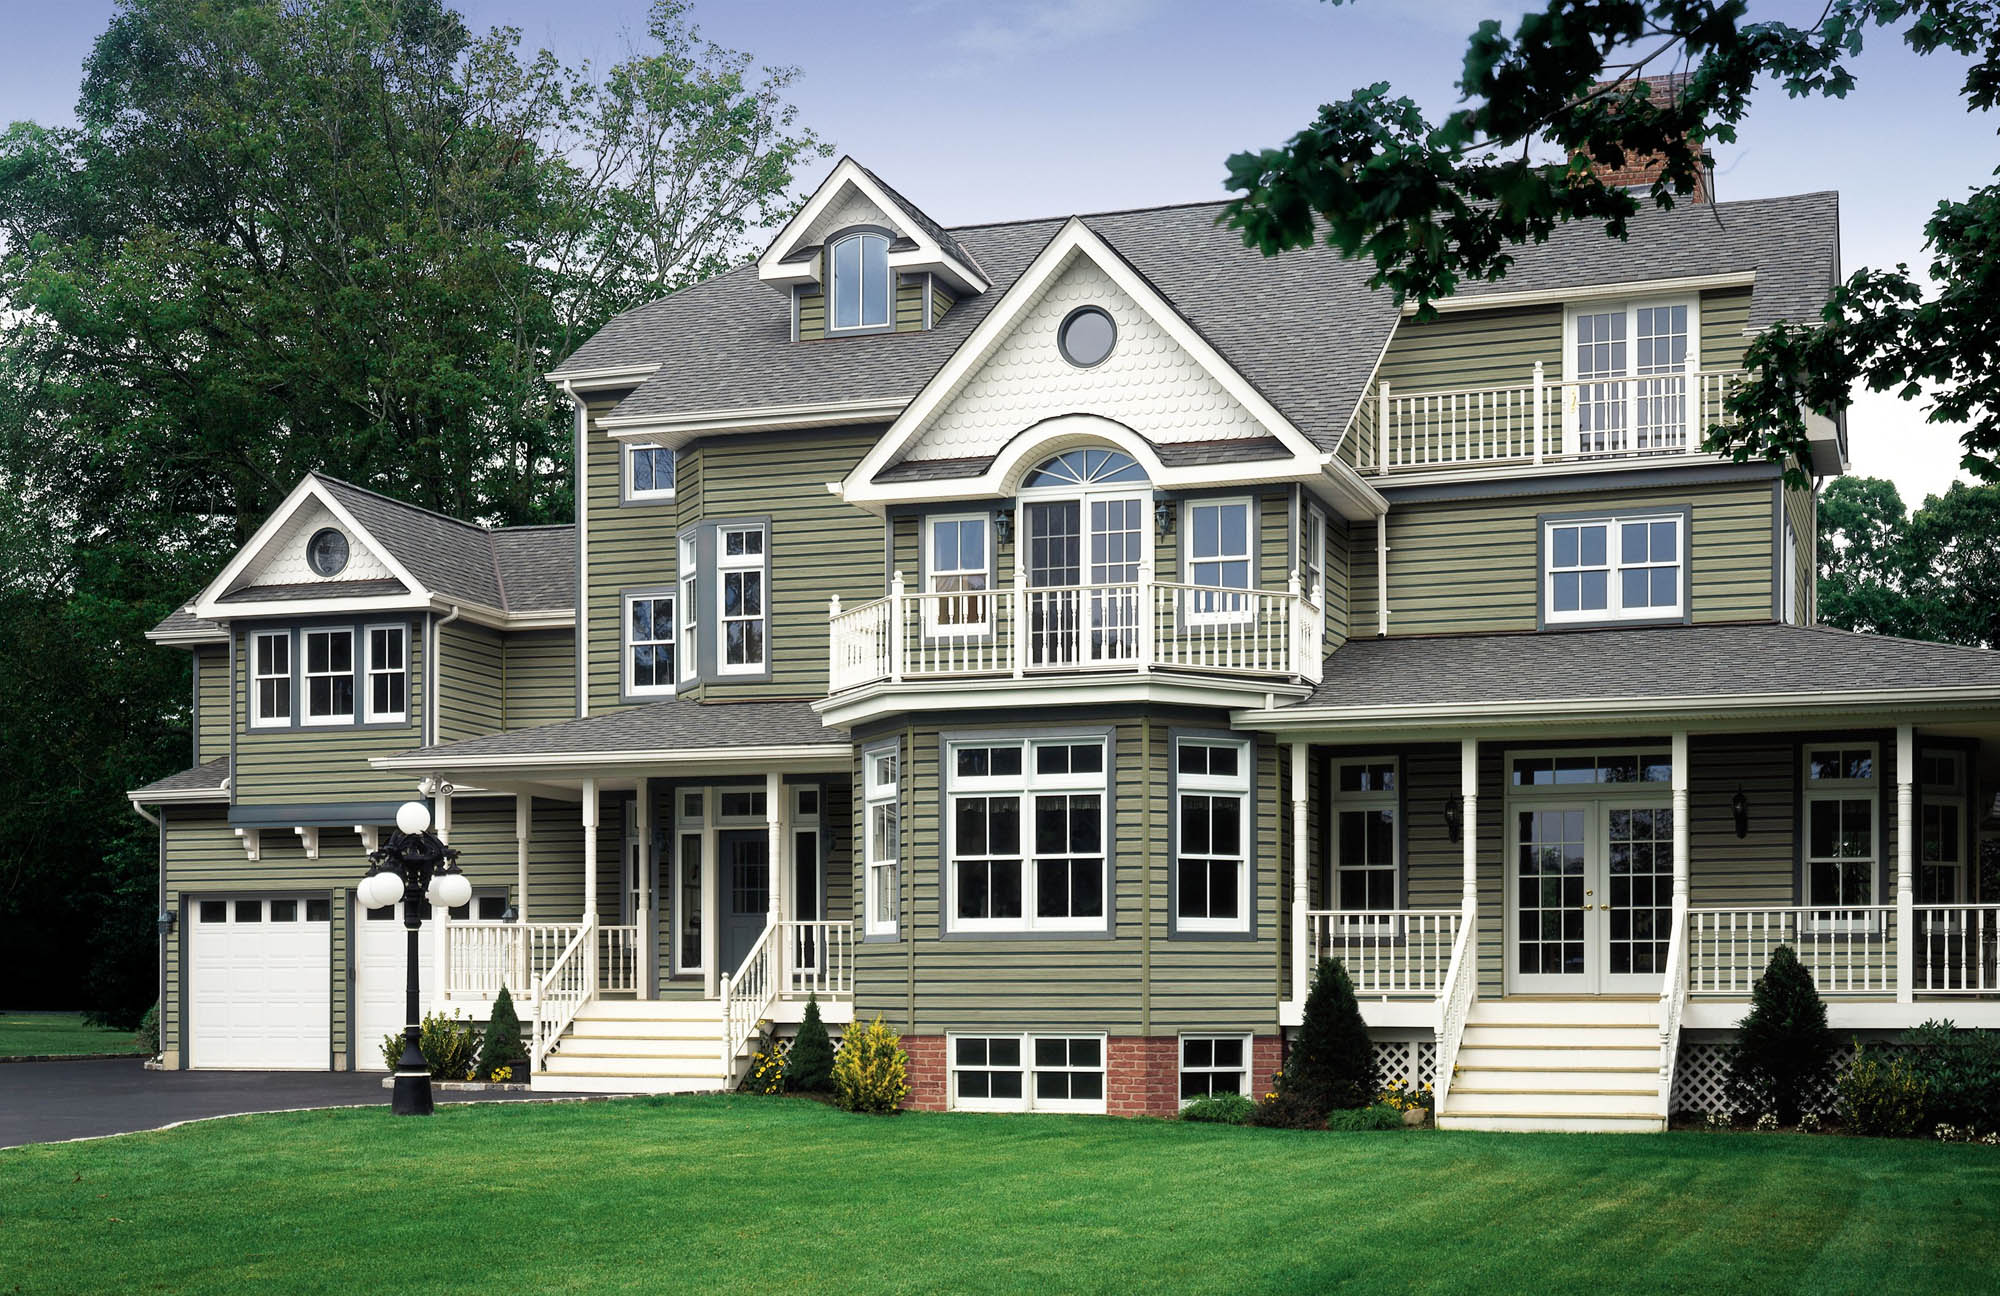 green house siding color ideas - green siding with brick white scalloping white railings and columns